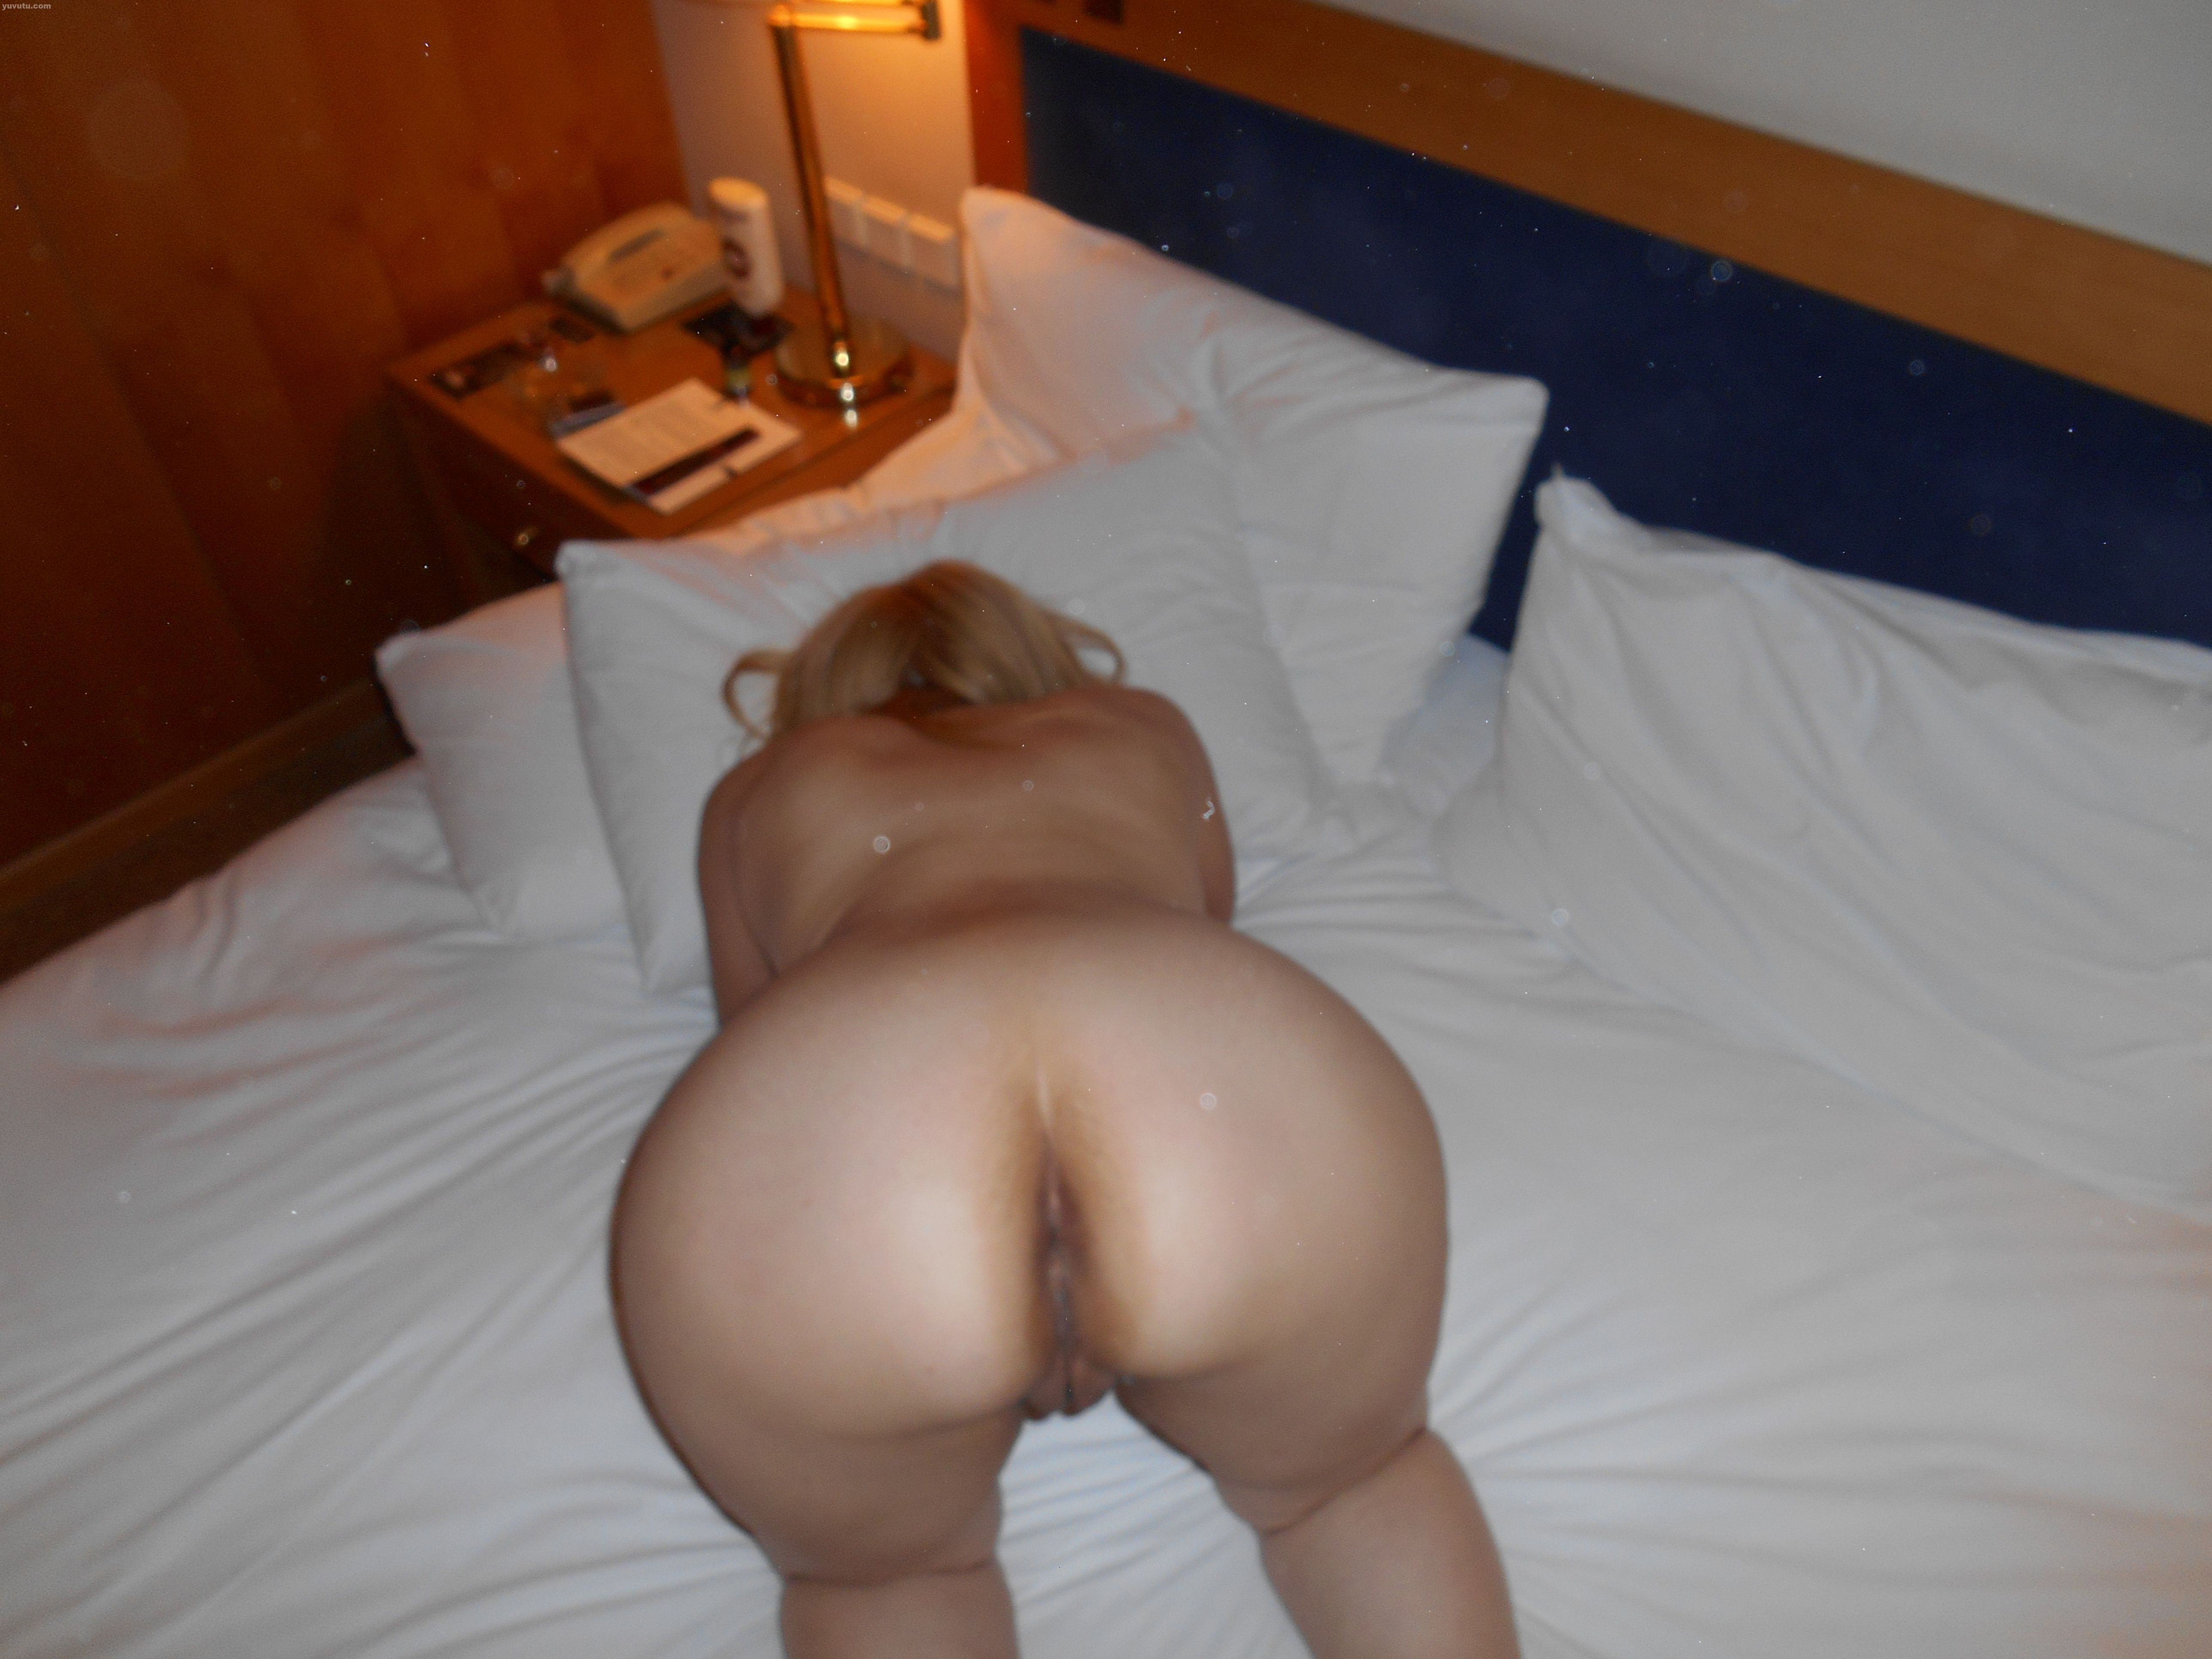 Amateur Porn Film adult homemade wife - nude gallery. comments: 5